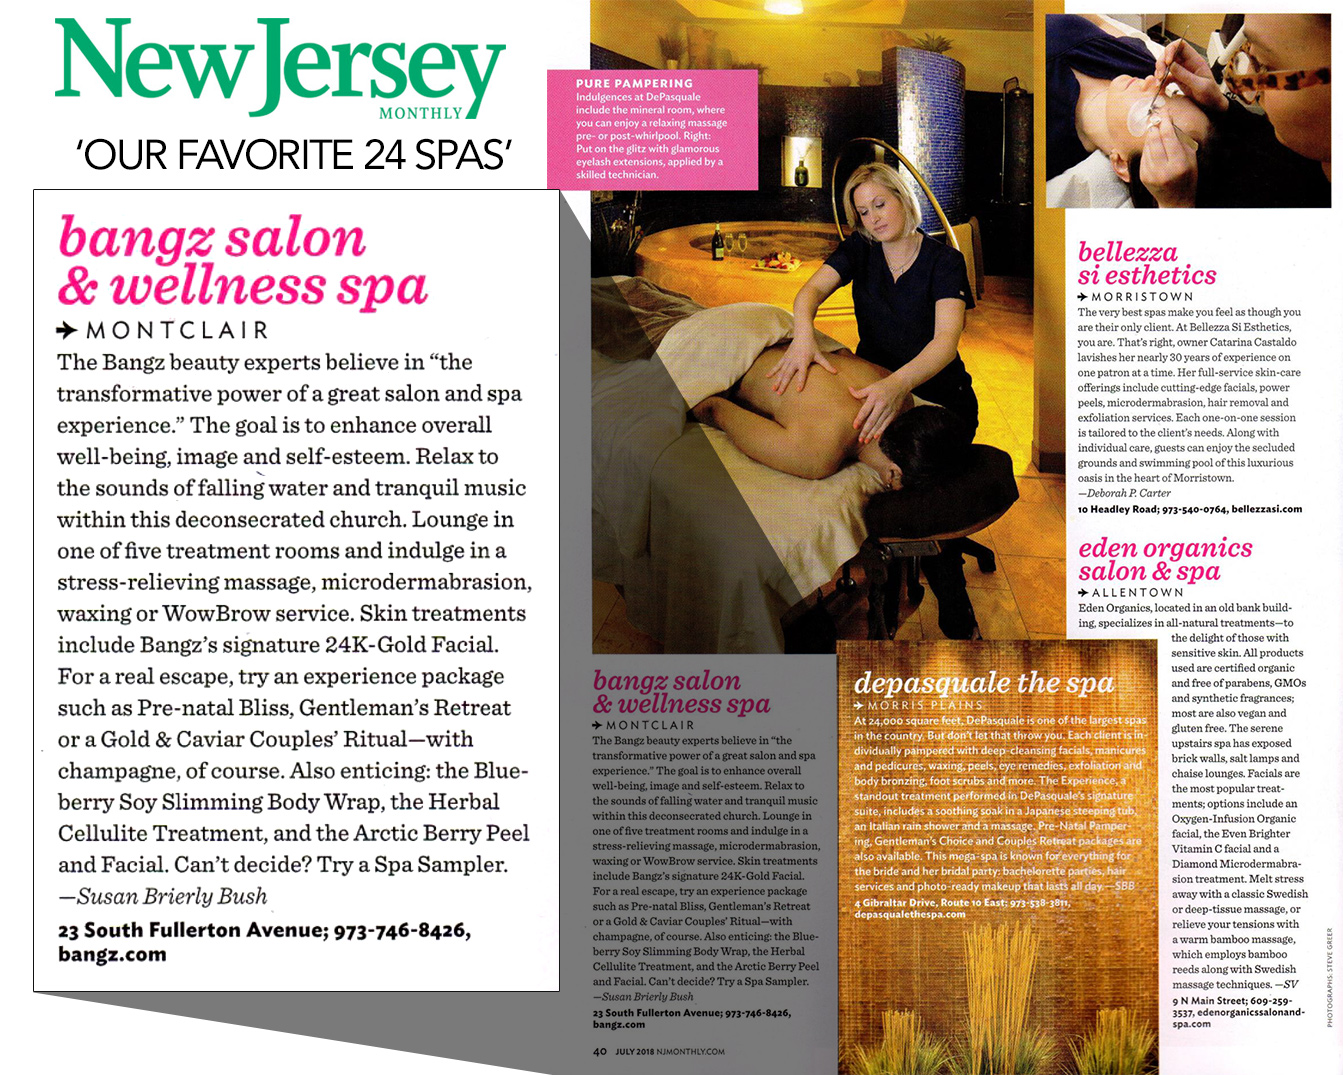 New Jersey Monthly July 2018 - Our Favorite 24 Spas in NJ - Bangz